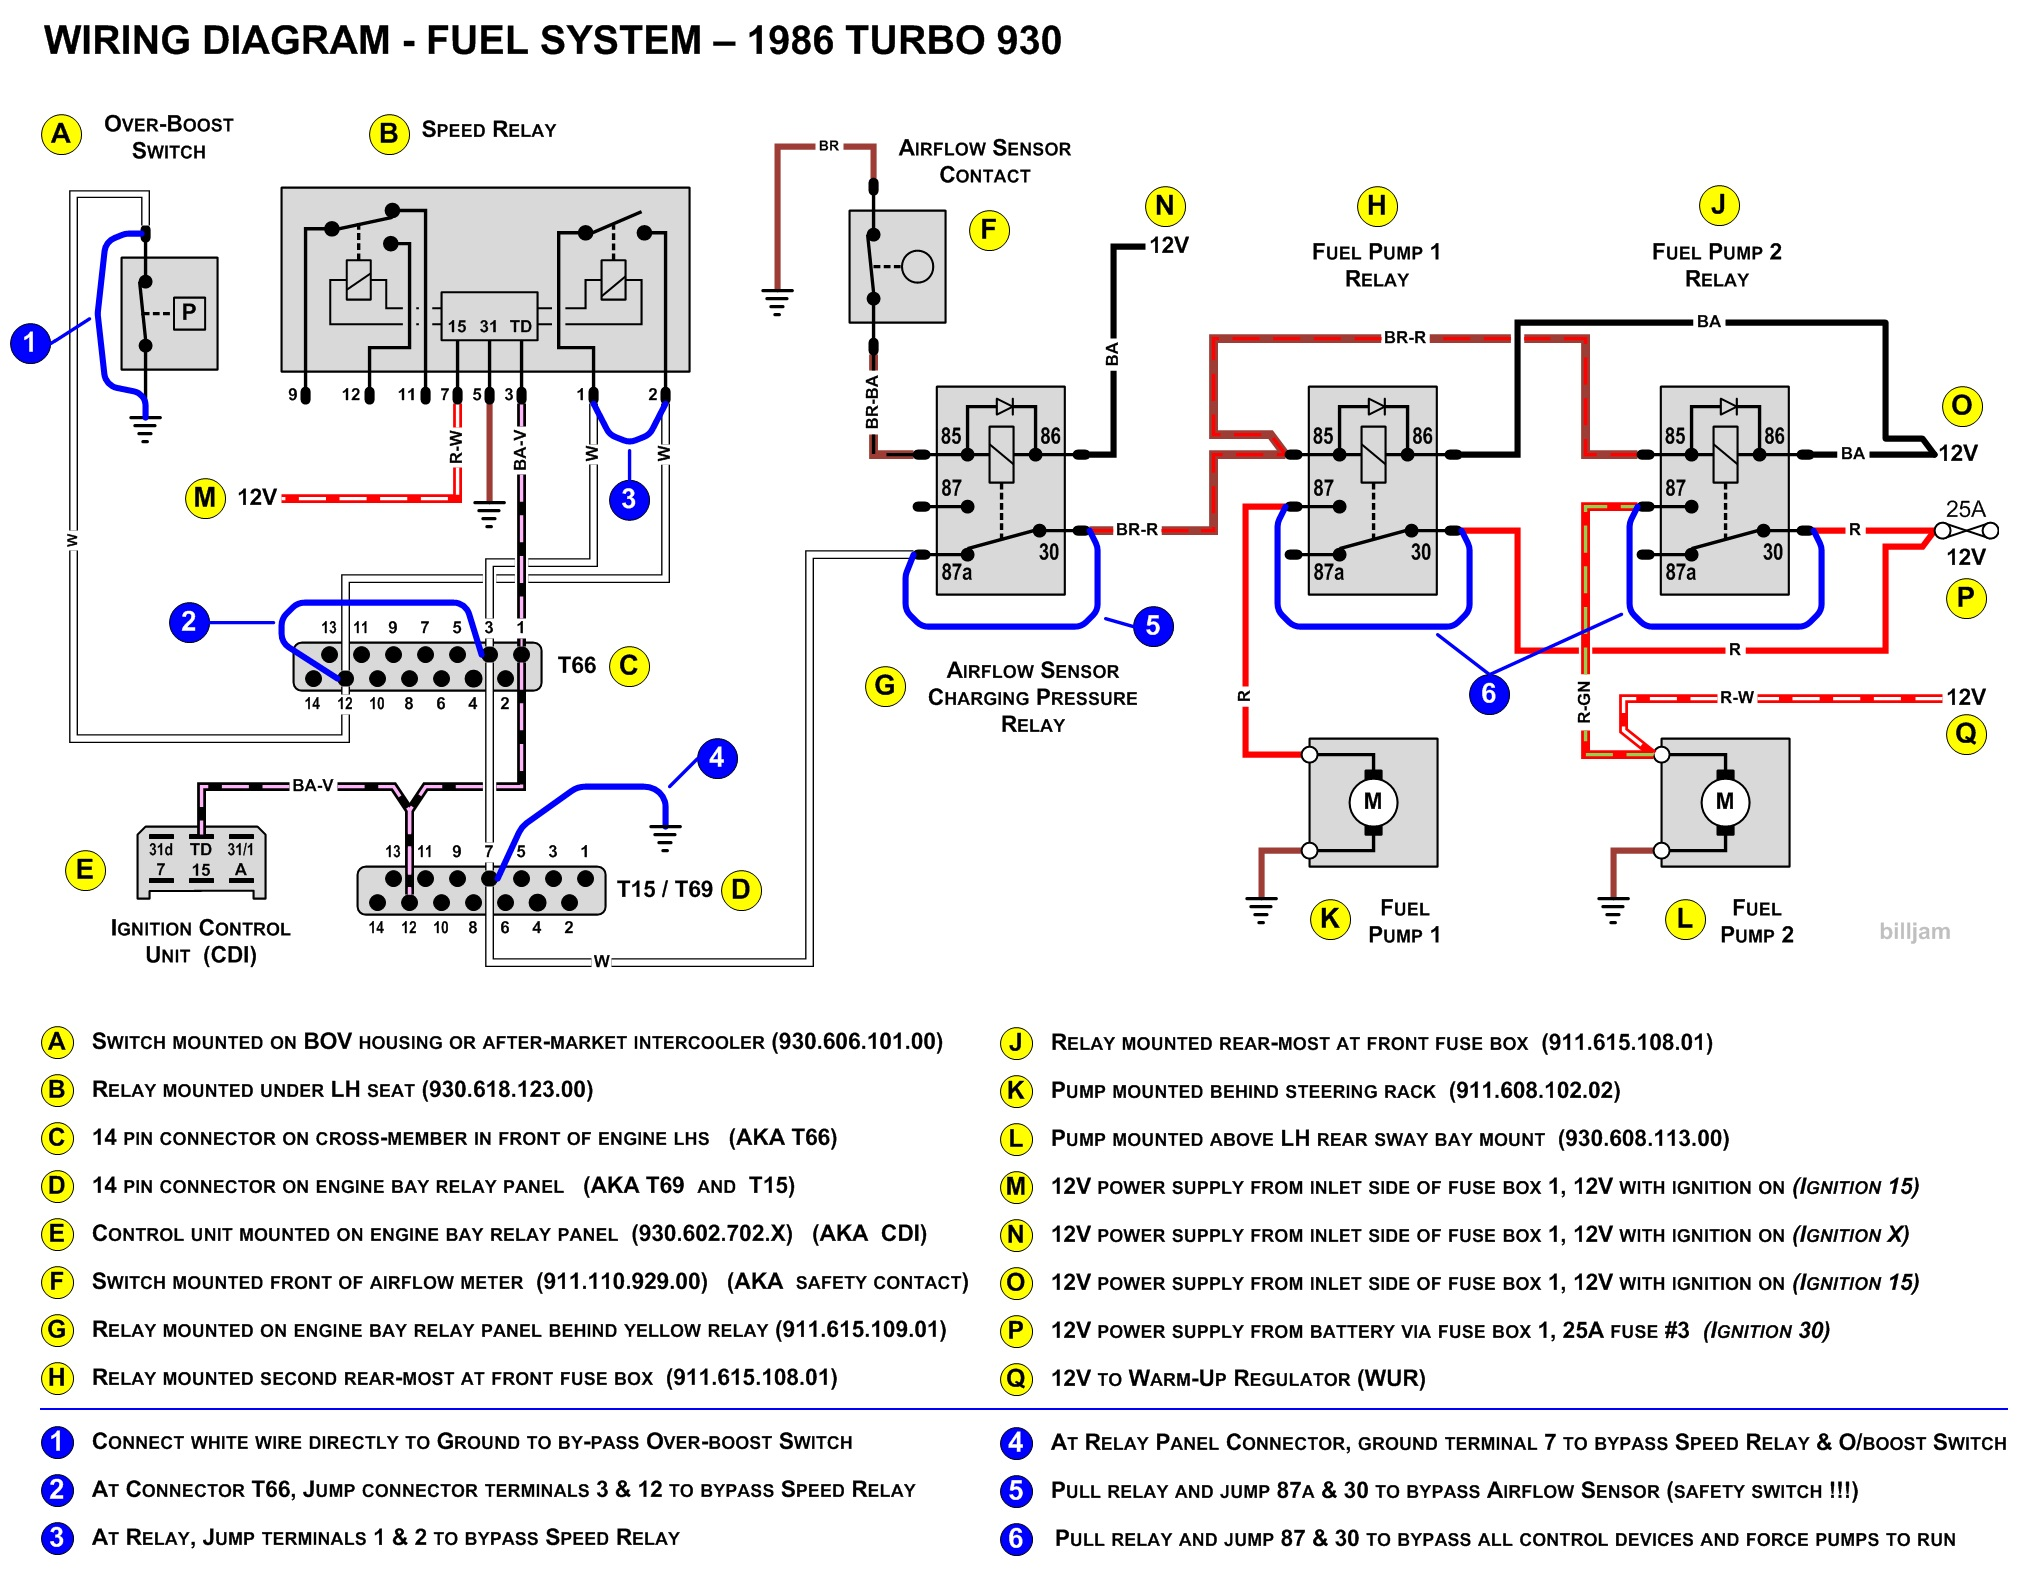 Made A Fuse Box Label For My 88 Page 3 Pelican Parts Technical Bbs - Wiring Diagram